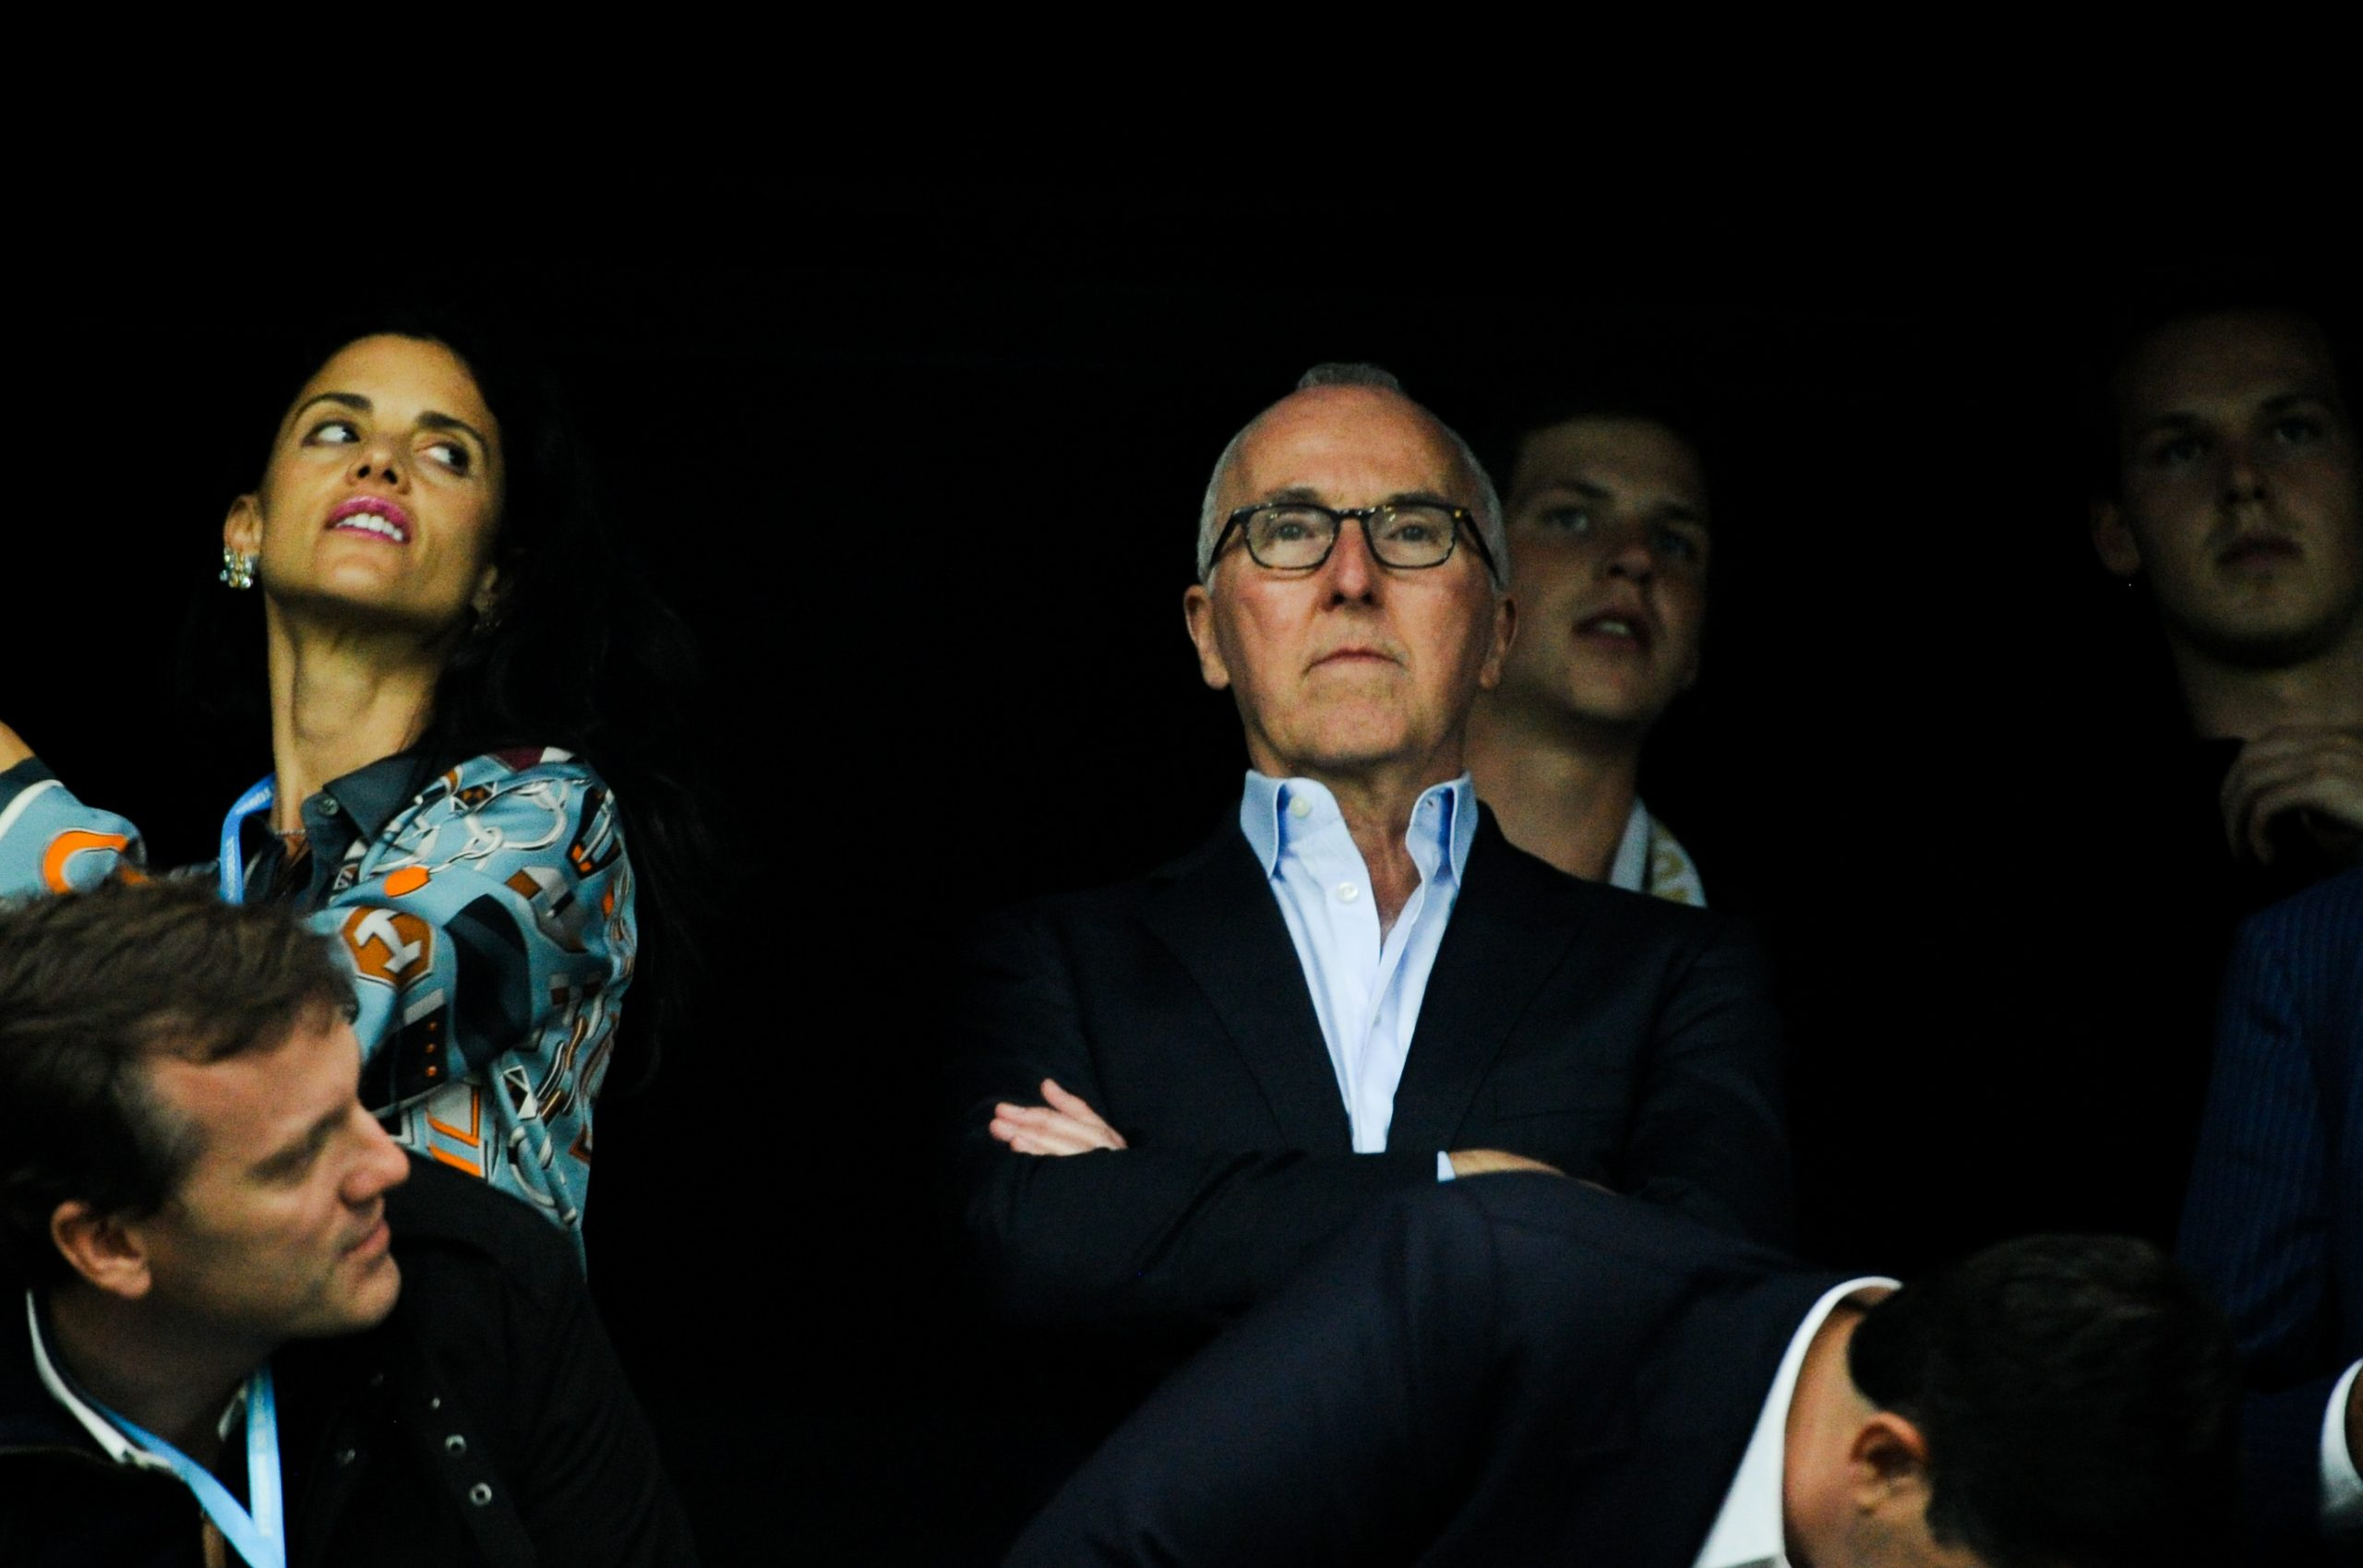 OM - La provenance de l'argent de McCourt pose question